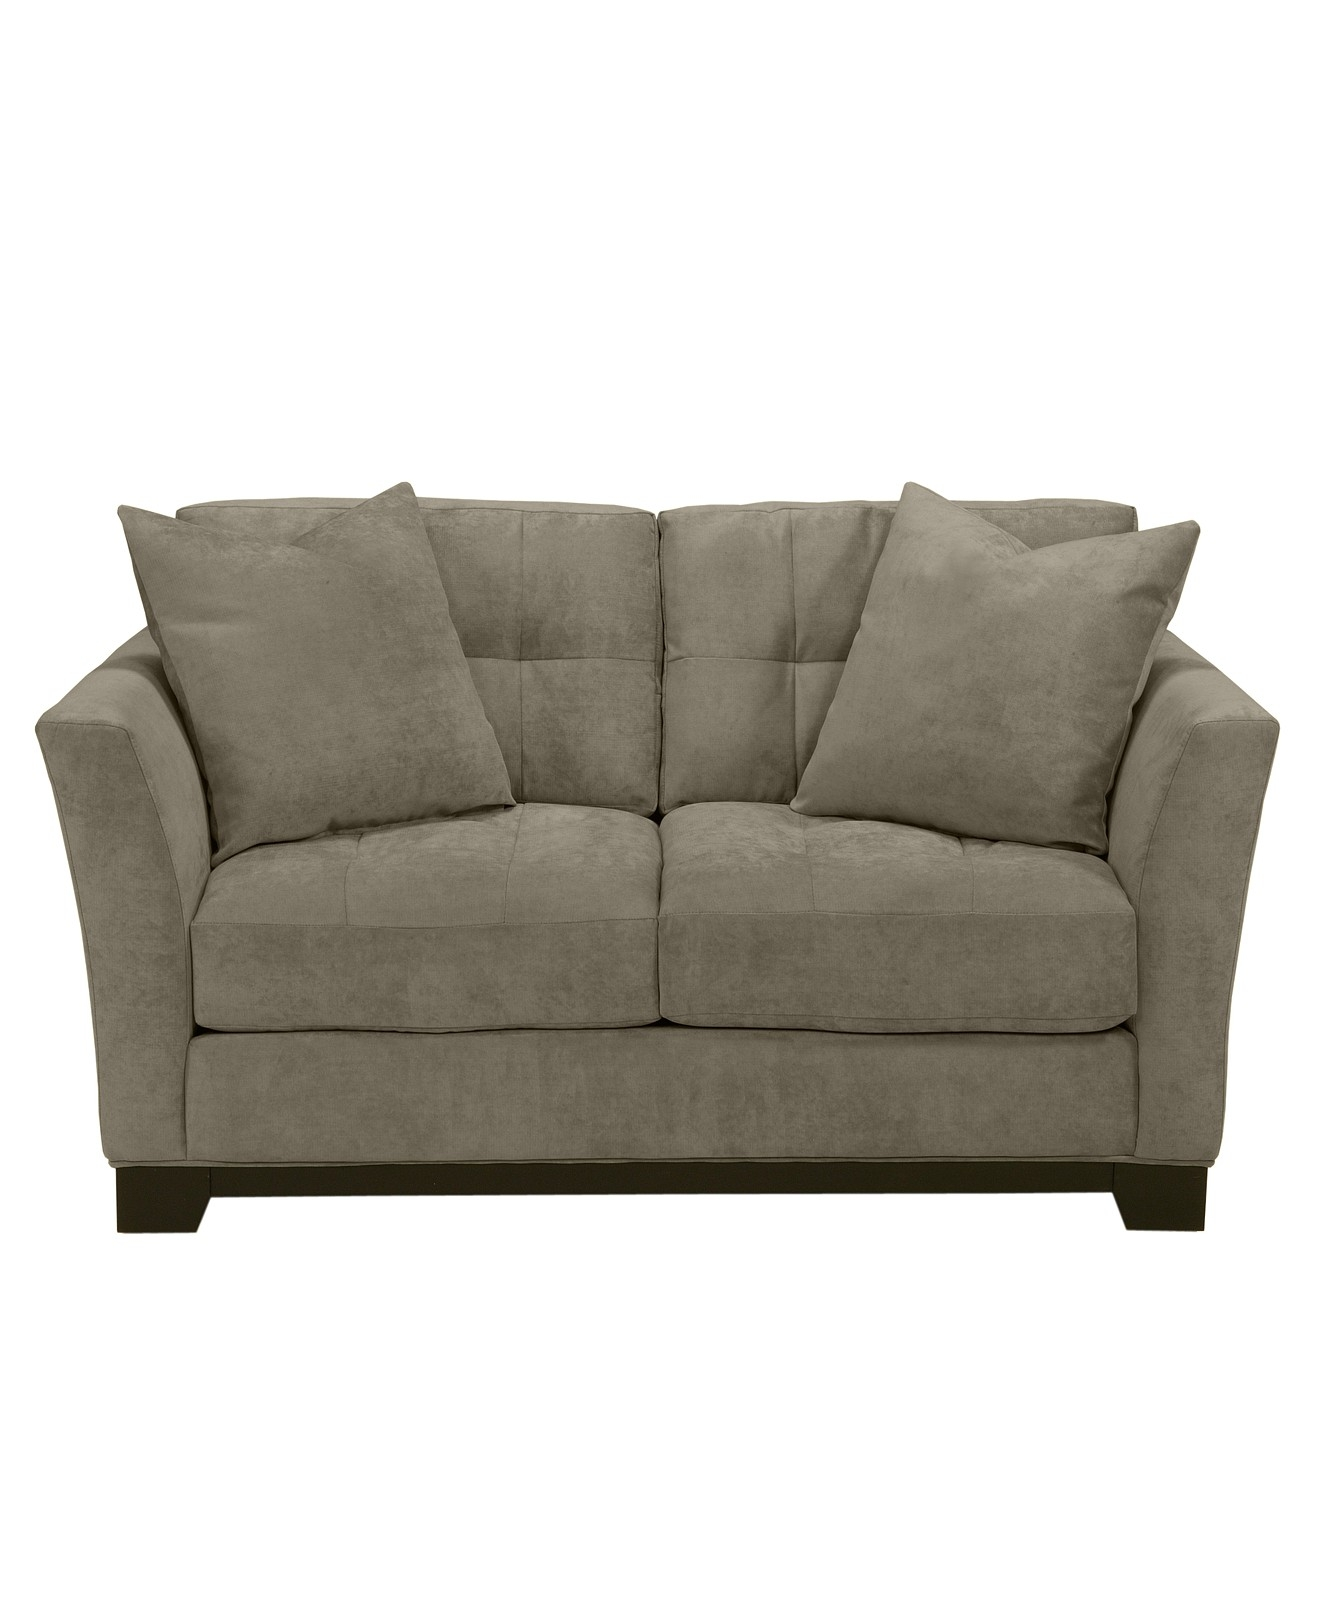 Elliot Fabric Microfiber Loveseat Couches Sofas Furniture For Elliott Sofa (Image 9 of 15)